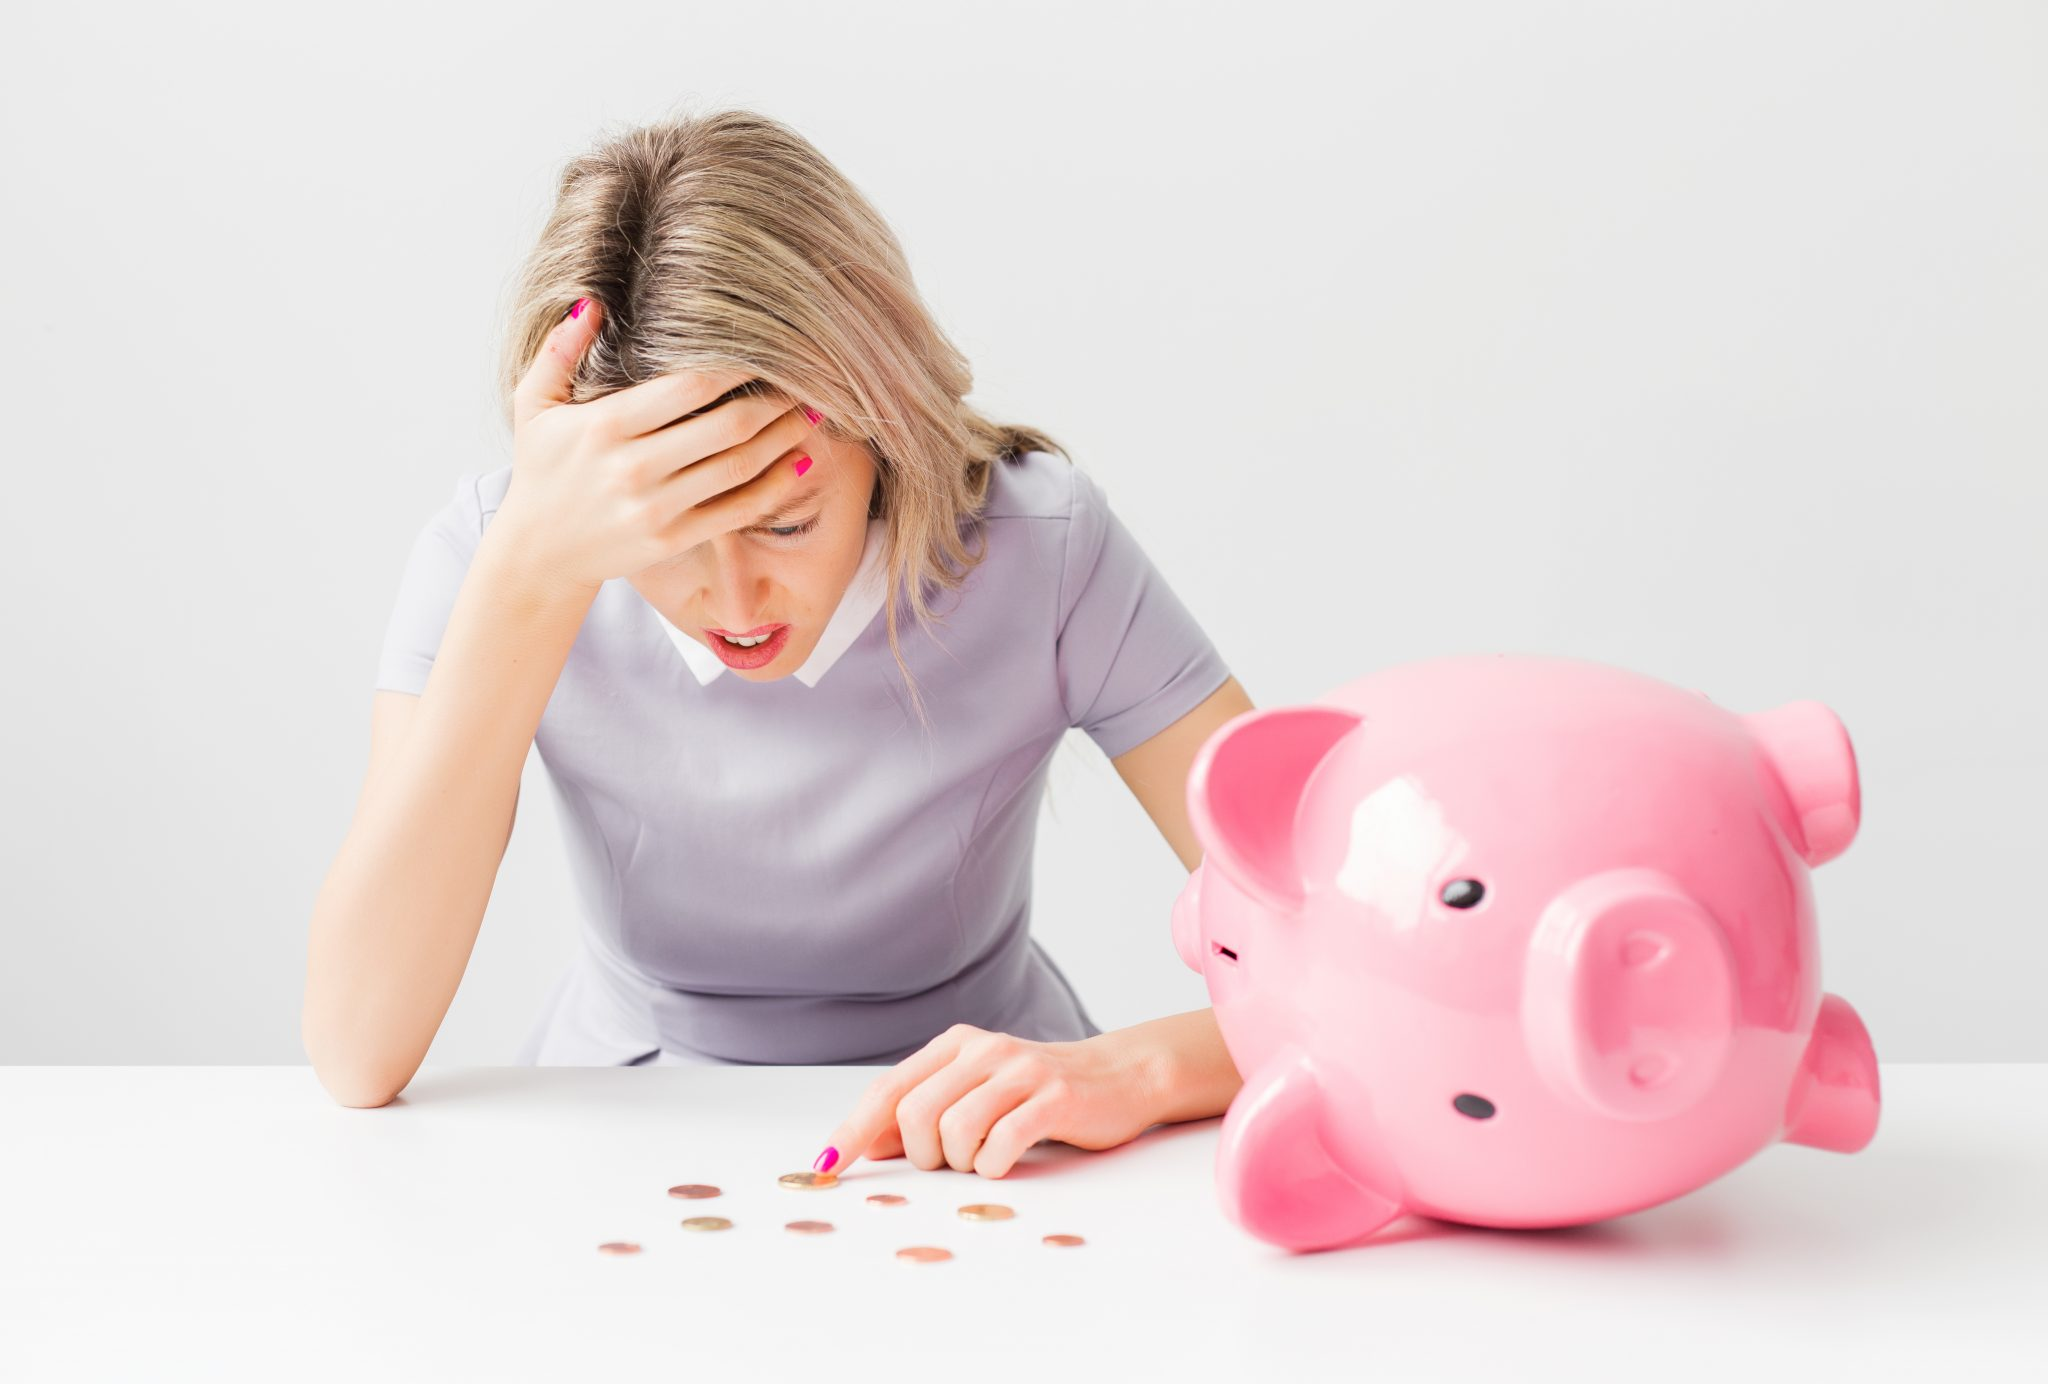 A woman stressed about money